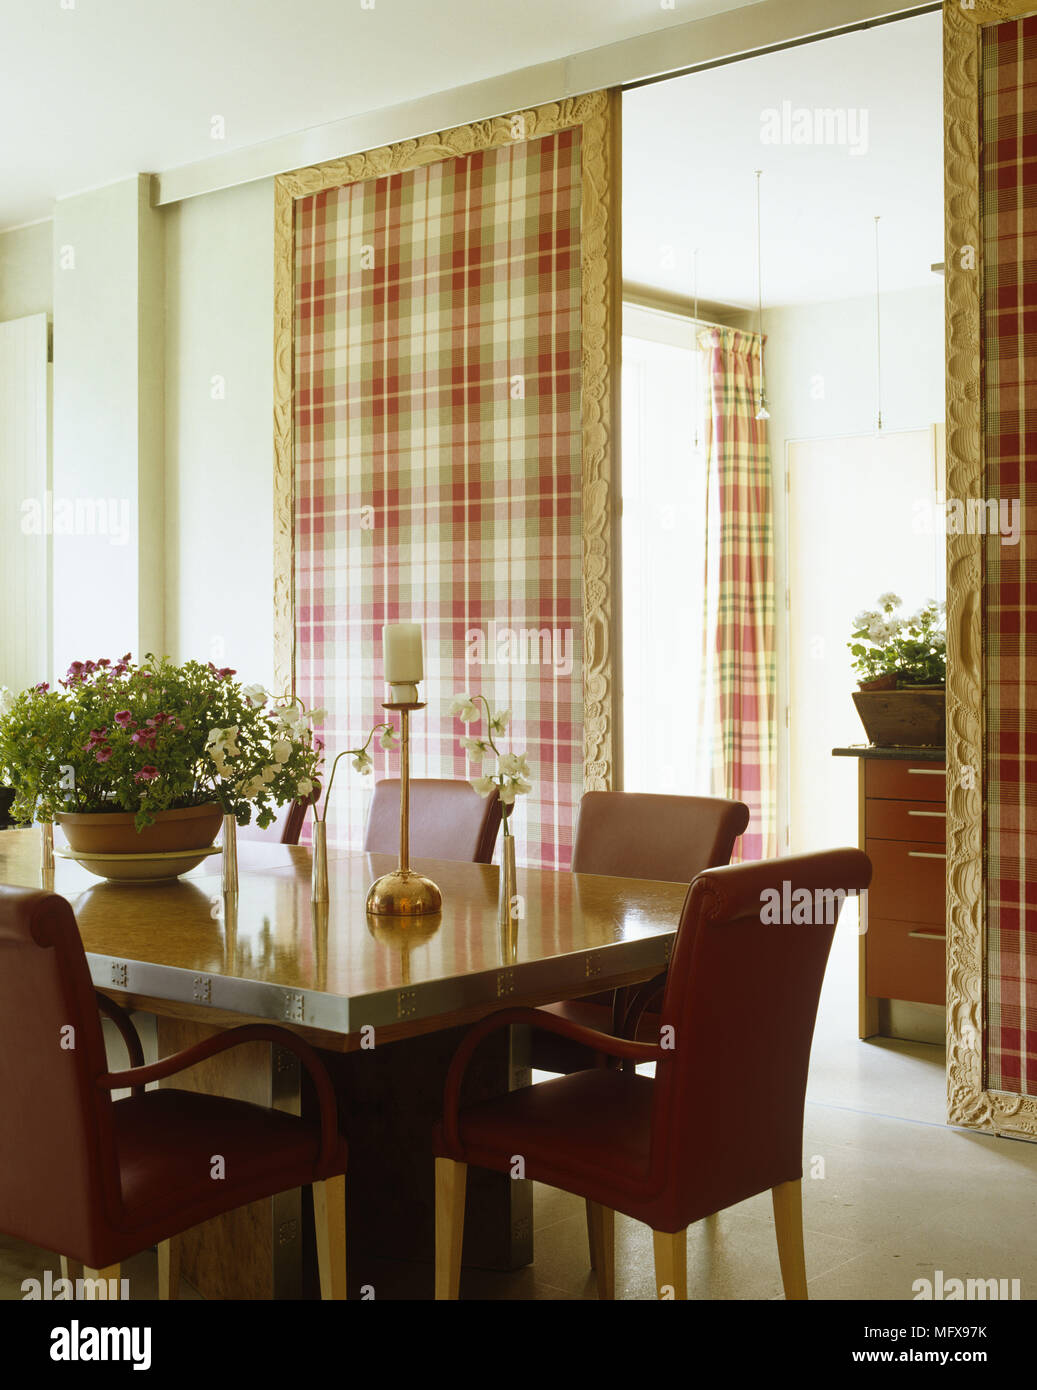 Houseplant On Dining Table And Upholstered Chairs In Front Of Sliding Doors  Covered In Plaid Fabric